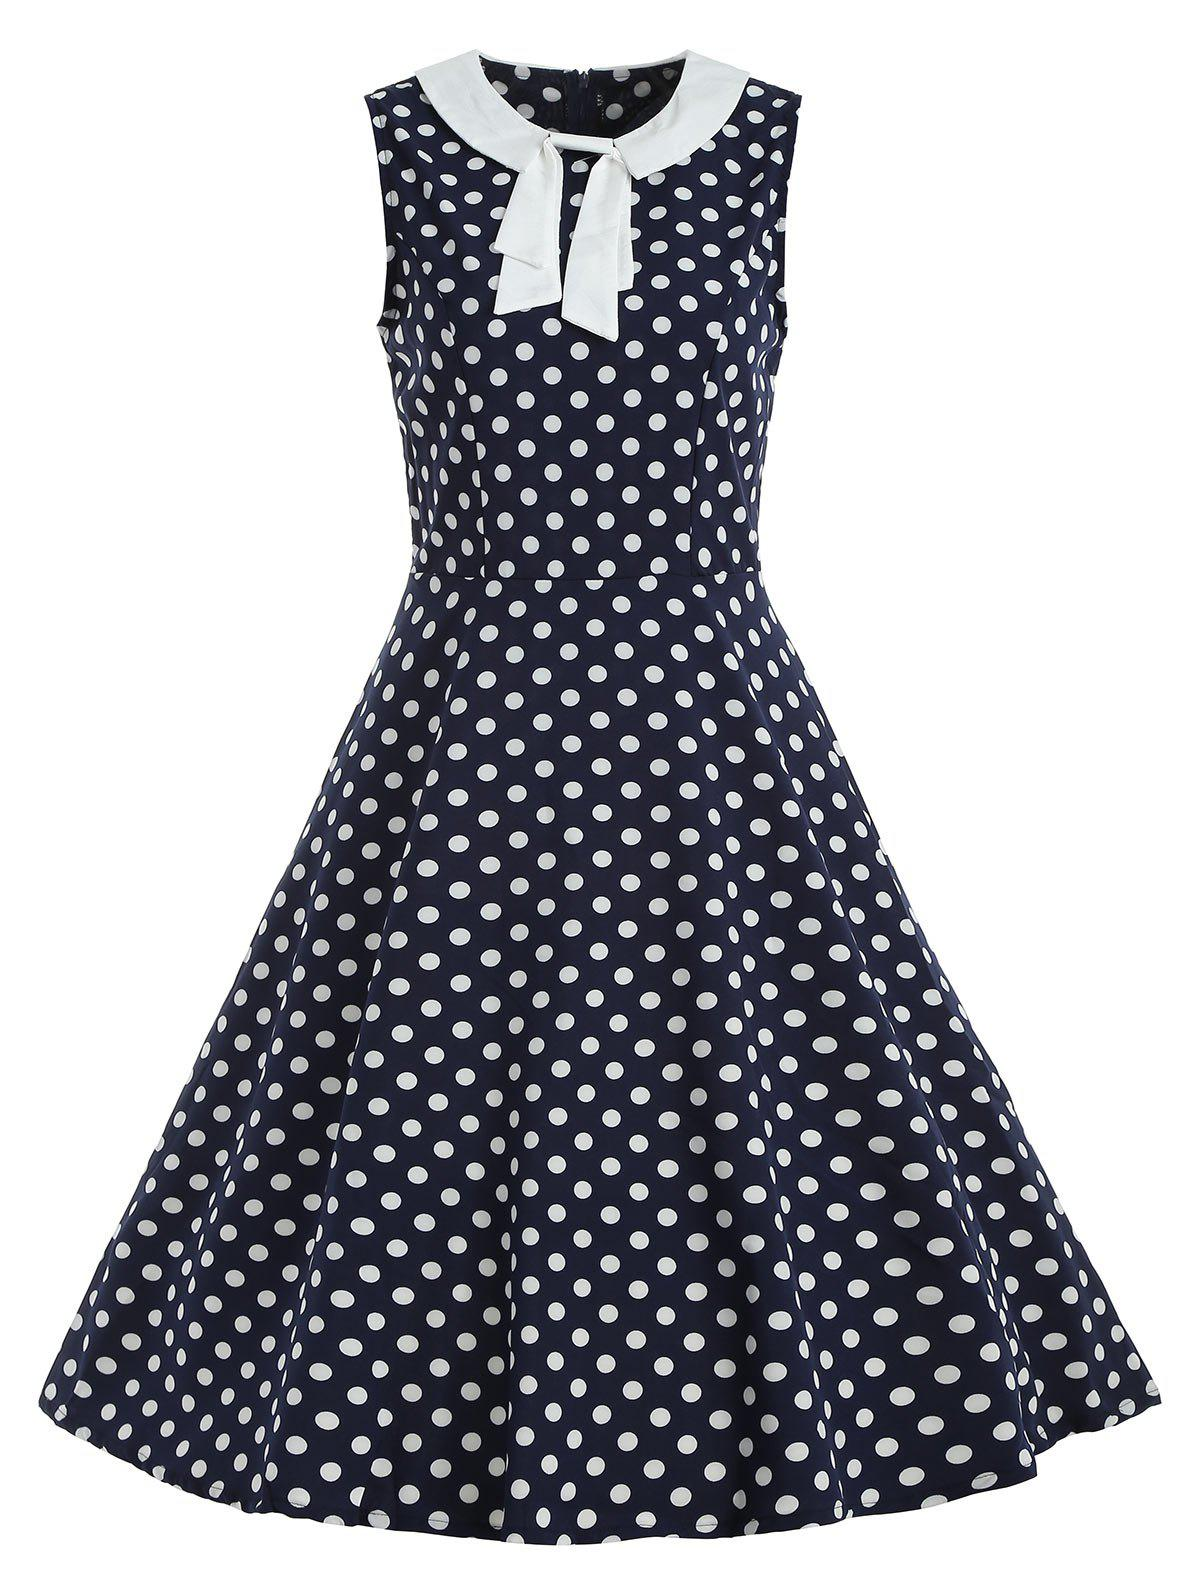 Online Bow Polka Dot Fit and Flare Vintage Dress